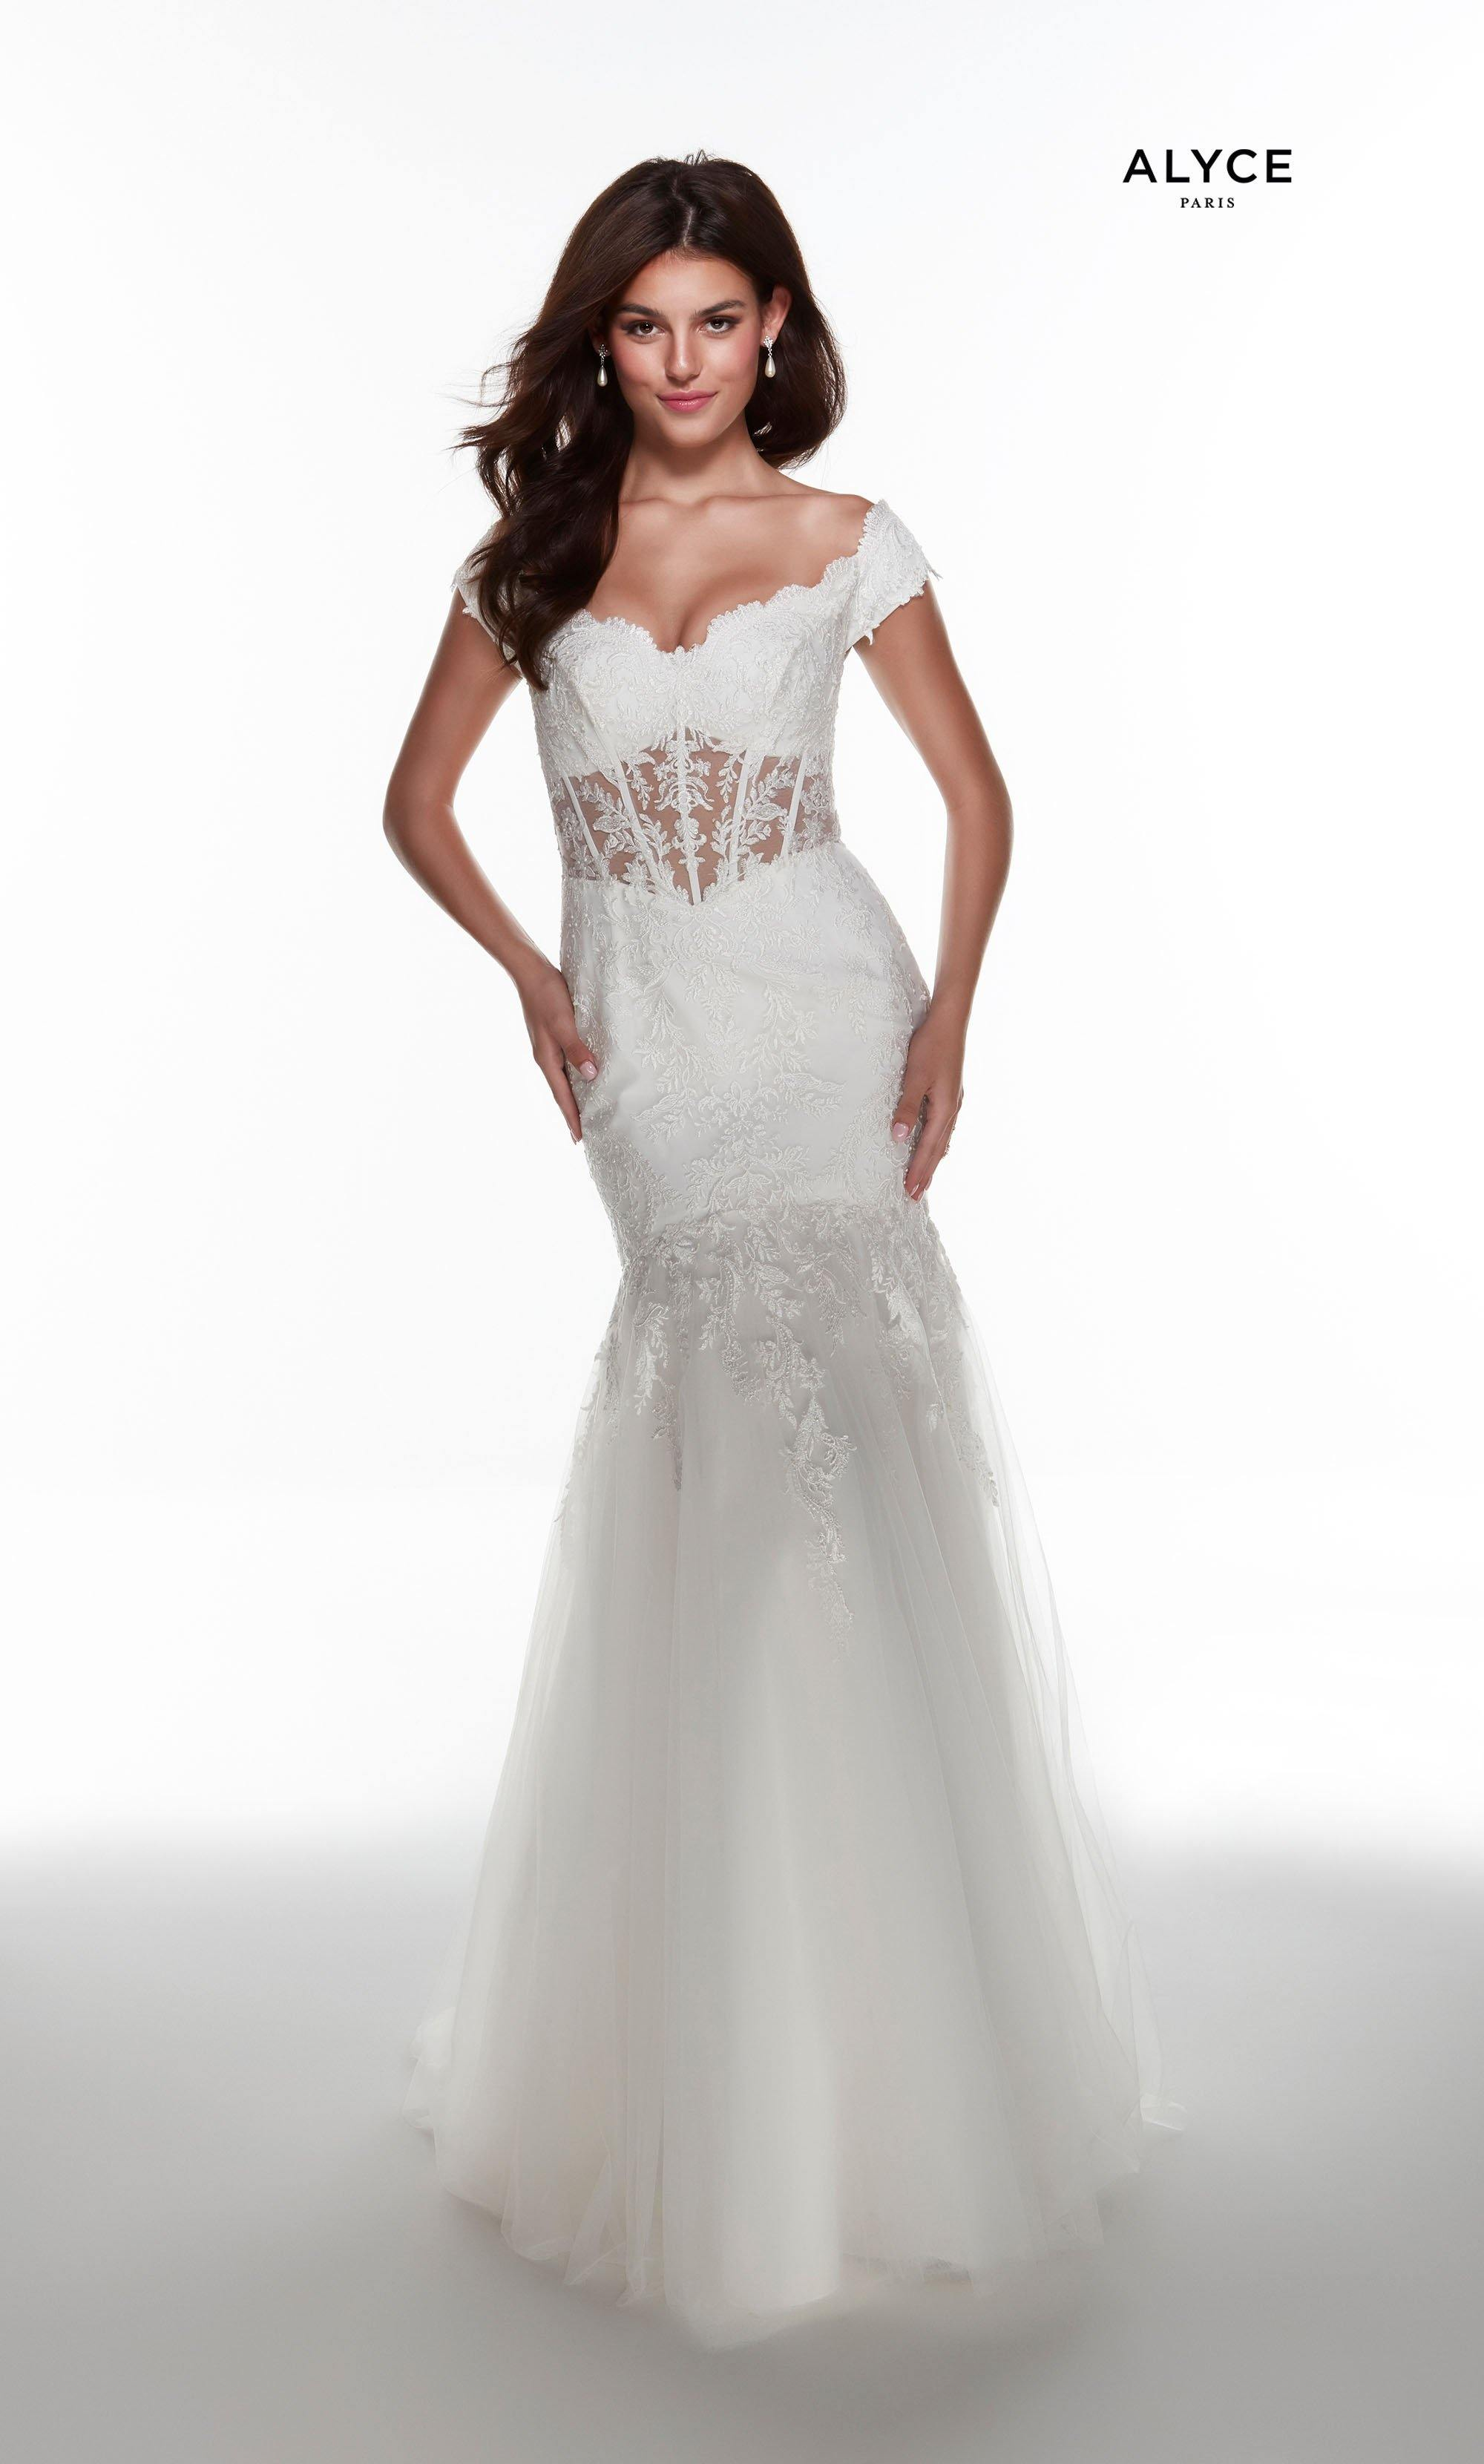 Off the shoulder Ivory mermaid bridal gown with a sheer lace bodice and tulle skirt